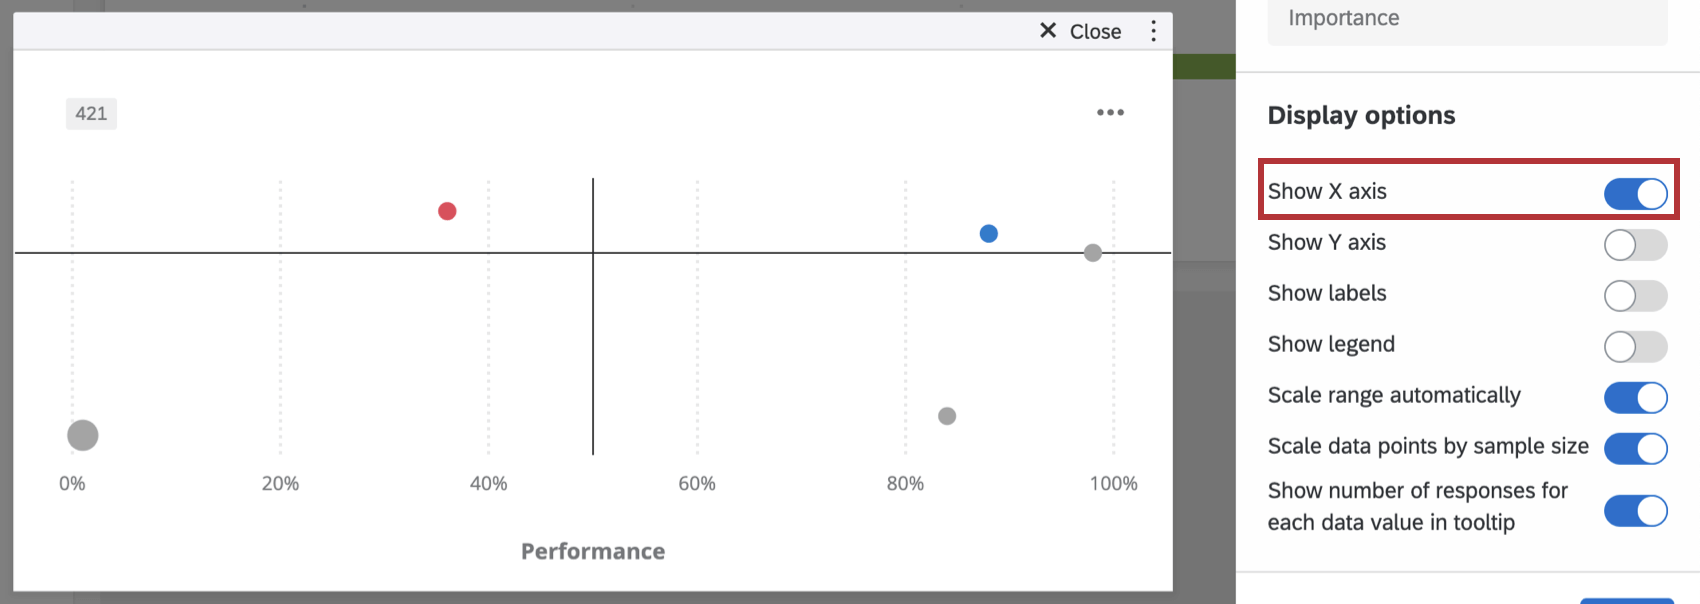 Show X Axis checkbox in Display Options section